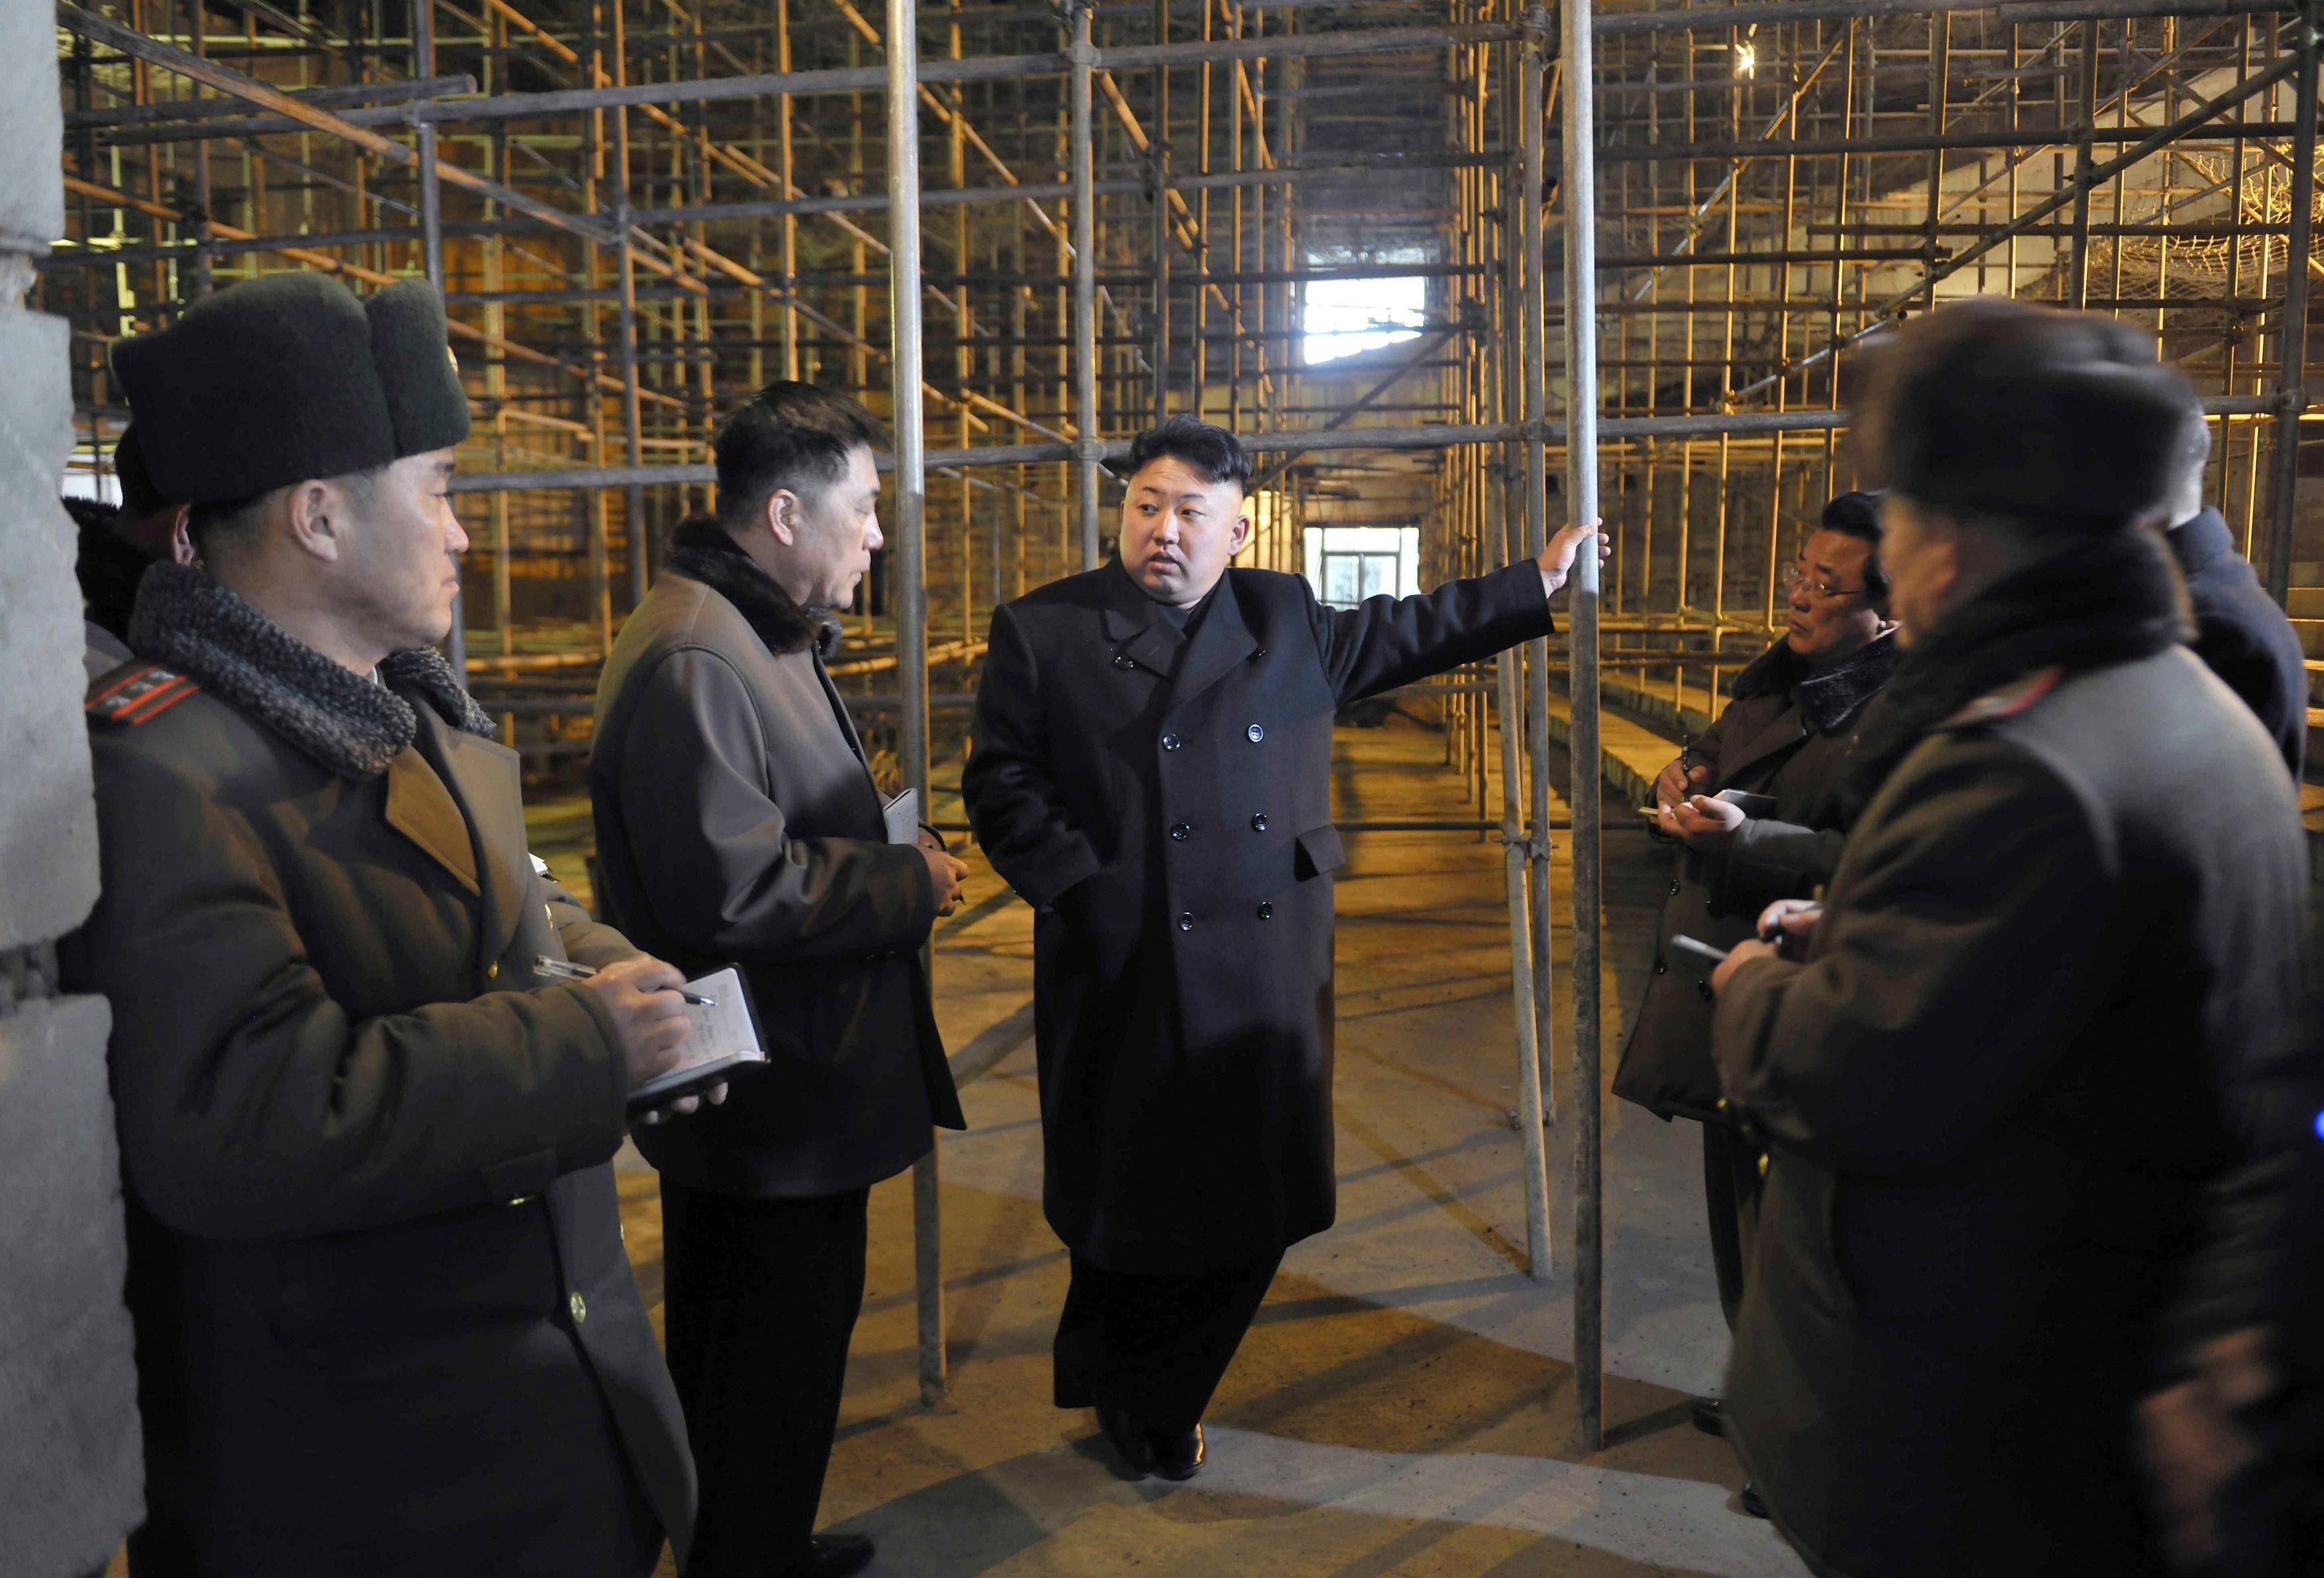 North Korean leader Kim Jong Un visits the Songdowon International Children's Camp now being remodelled, in this undated photo released by North Korea's Korean Central News Agency (KCNA) in Pyongyang, Feb. 24, 2014.  (Reuters)